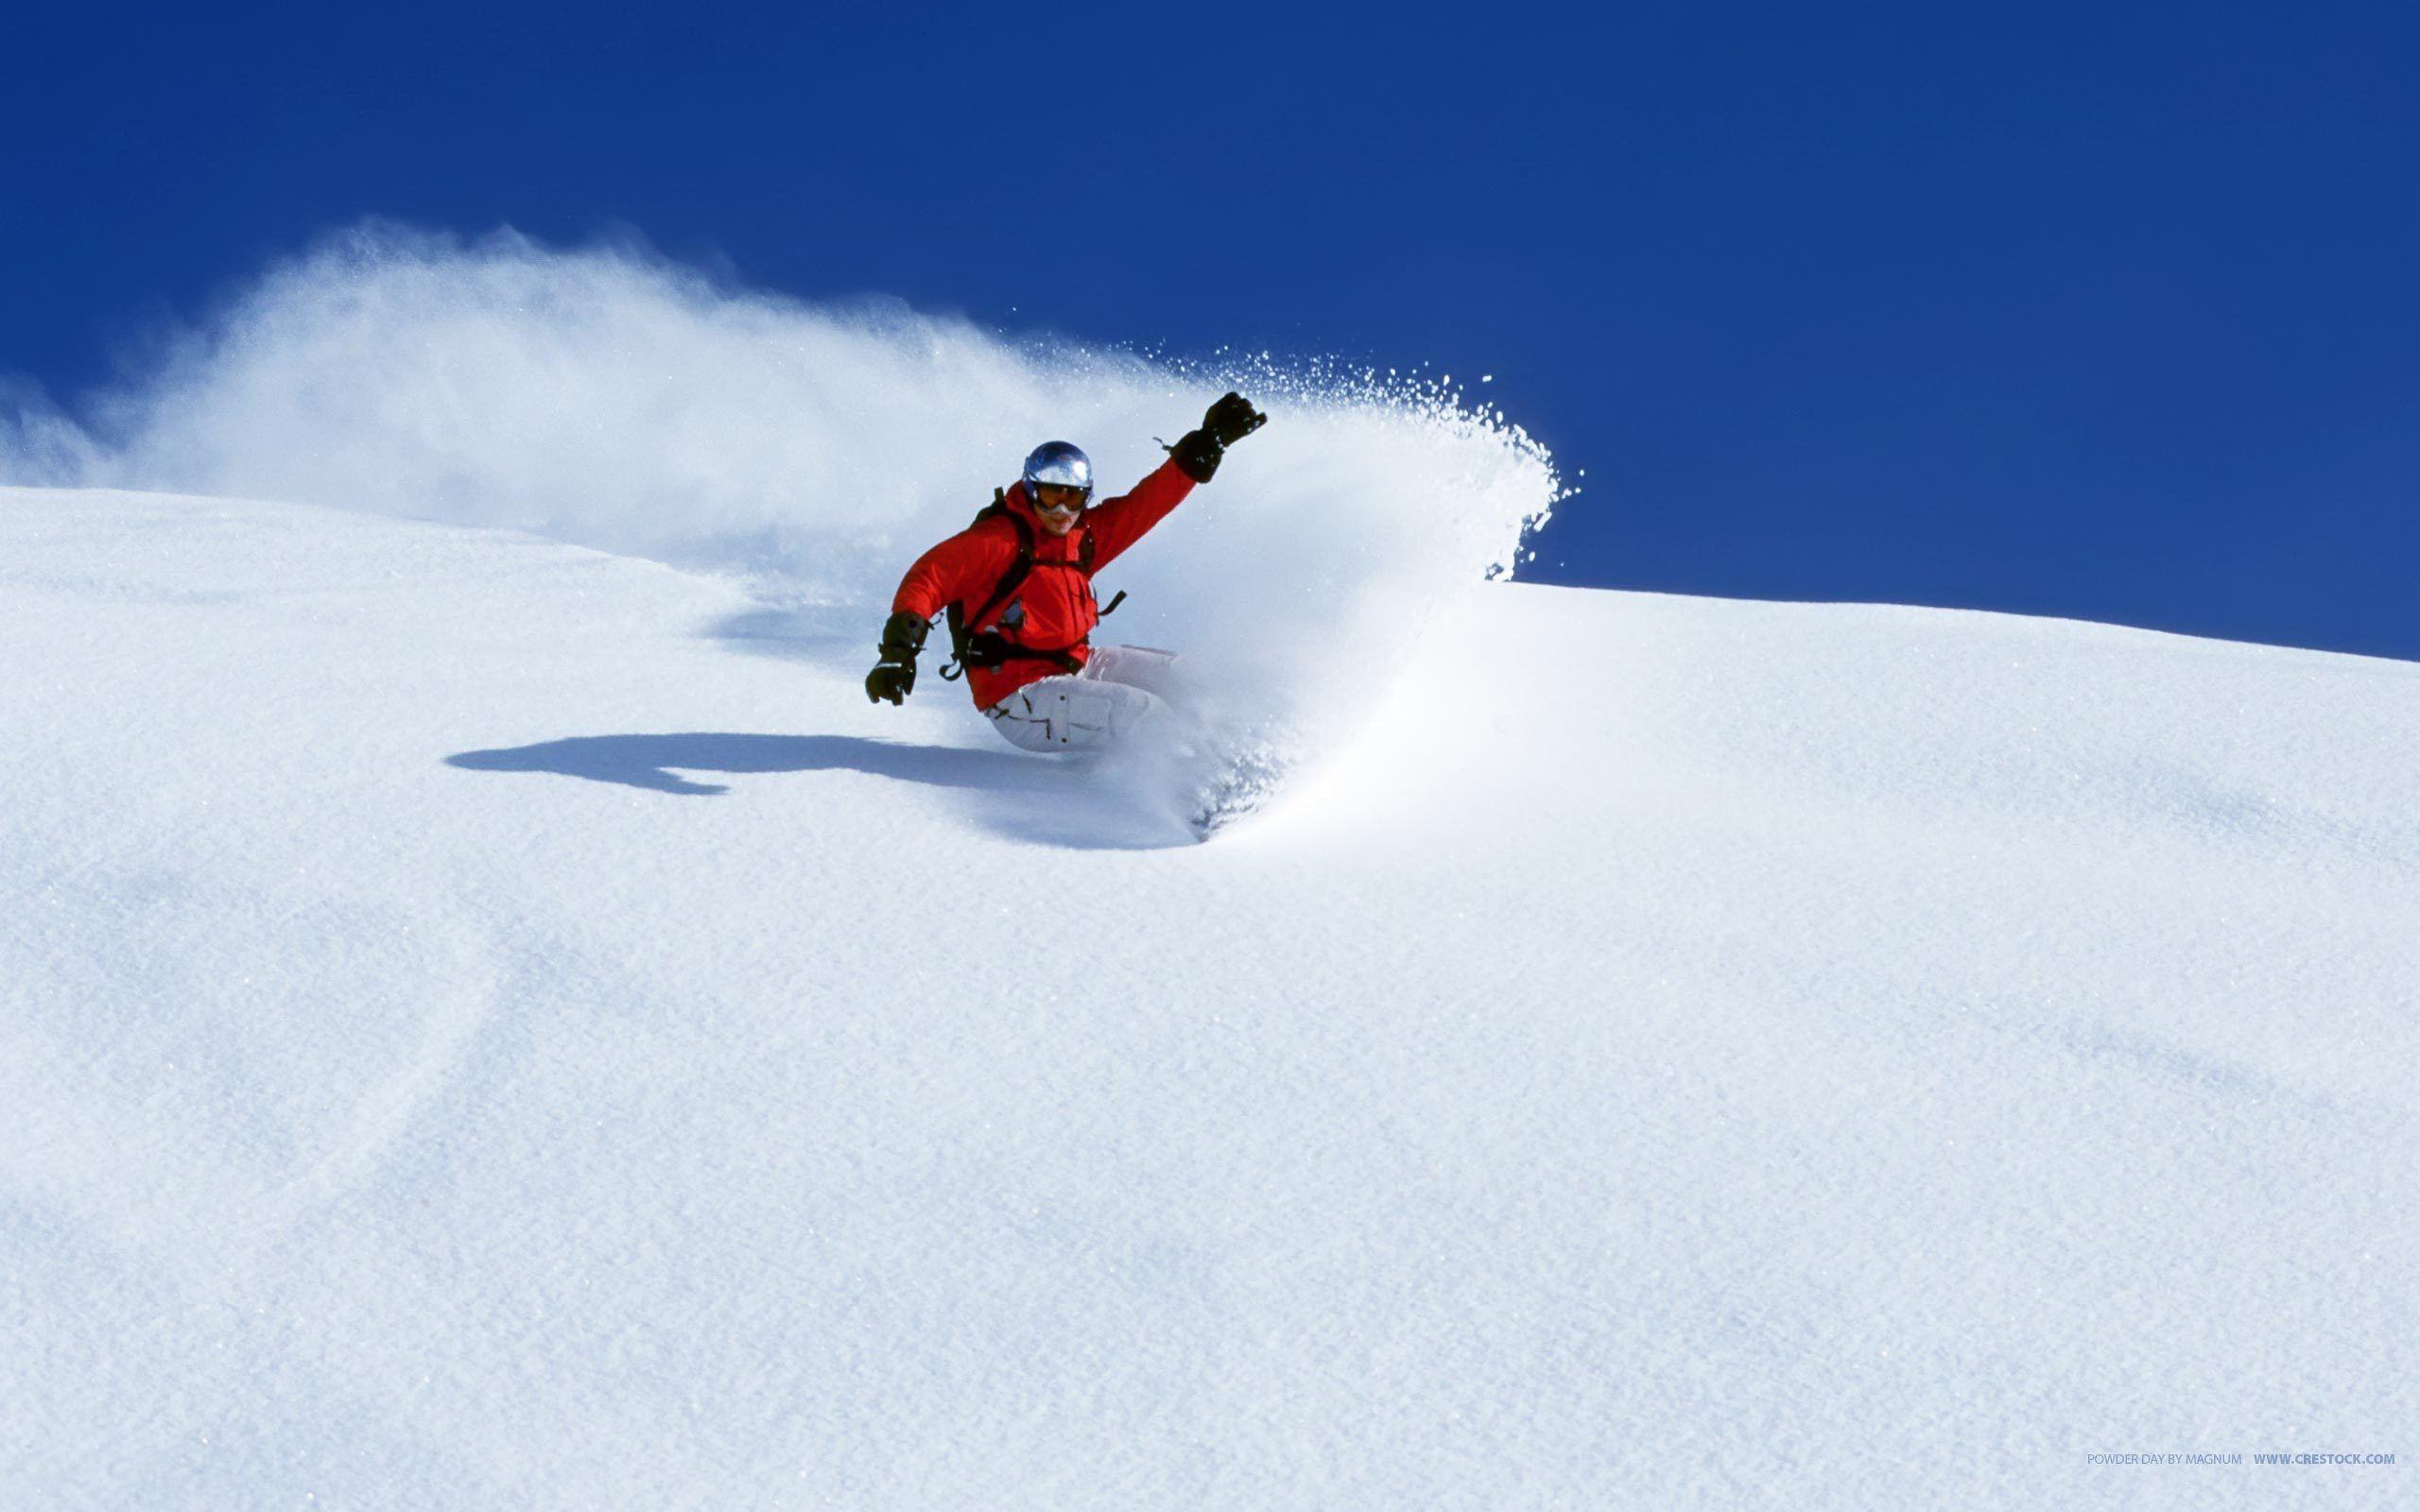 snowboard outdoor wallpaper desktop - photo #1